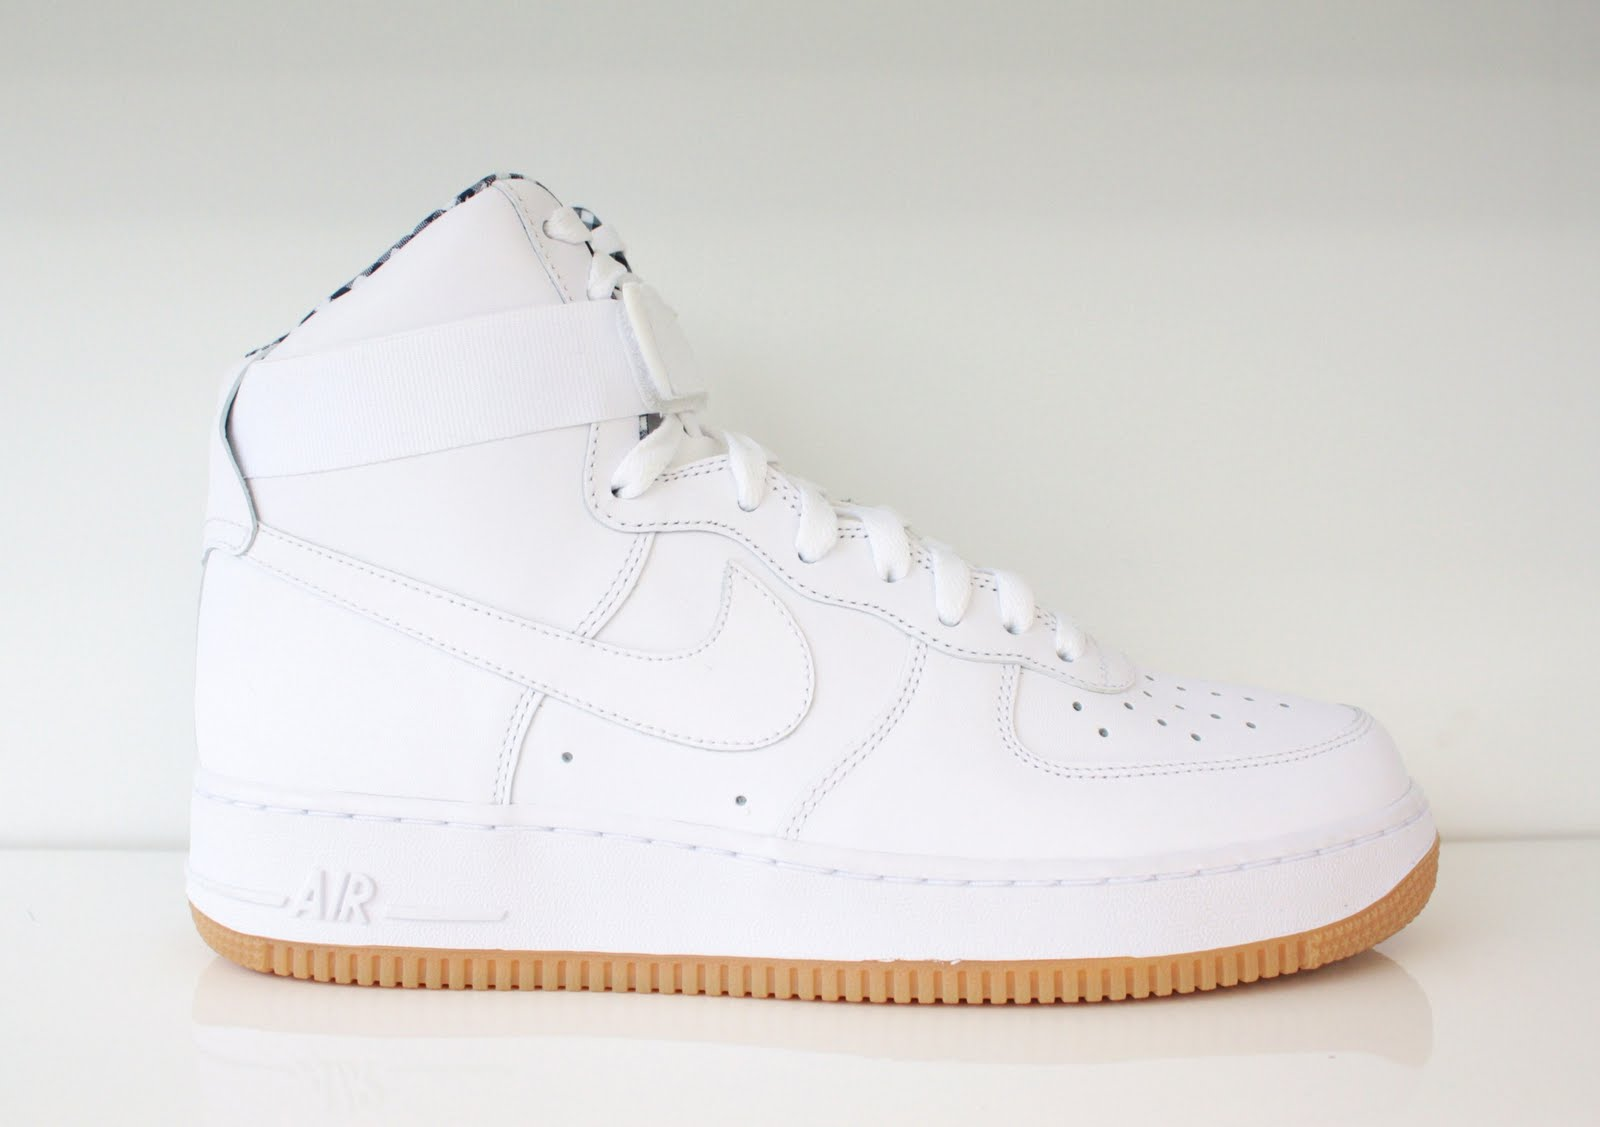 Jays Stores: New Nike Air Force One High White/Gum Available Now